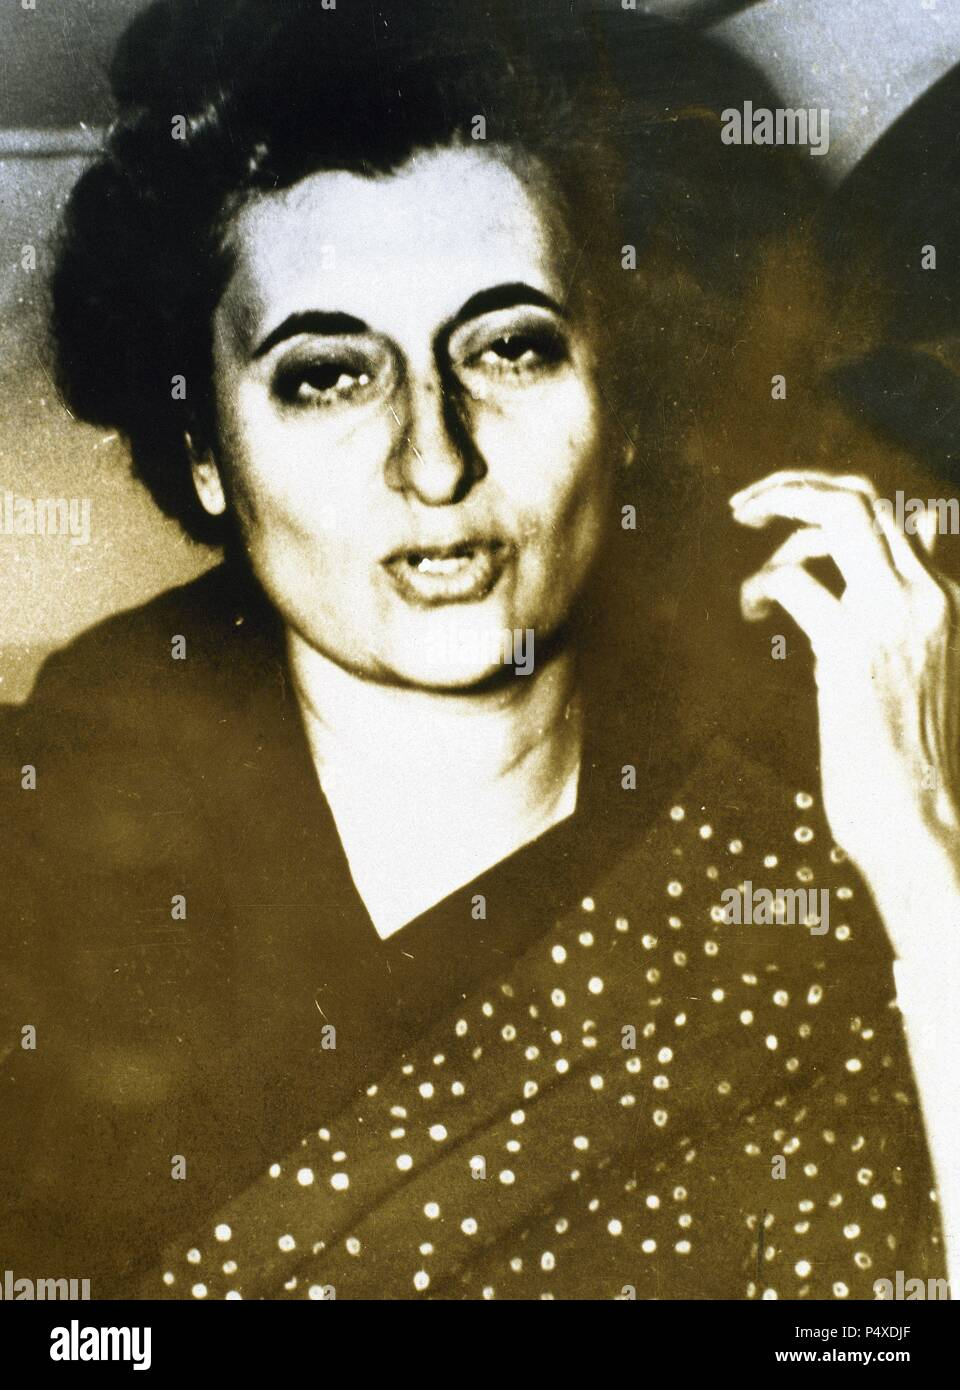 Indira Gandhi (1917-1984). Indian politician and the leader of the Indian National Congress. She was the third Prime Minister of the Republic of India for three consecutive terms from 1966 to 1977 and for a fourth term from 1980 until her assassination in 1984. - Stock Image